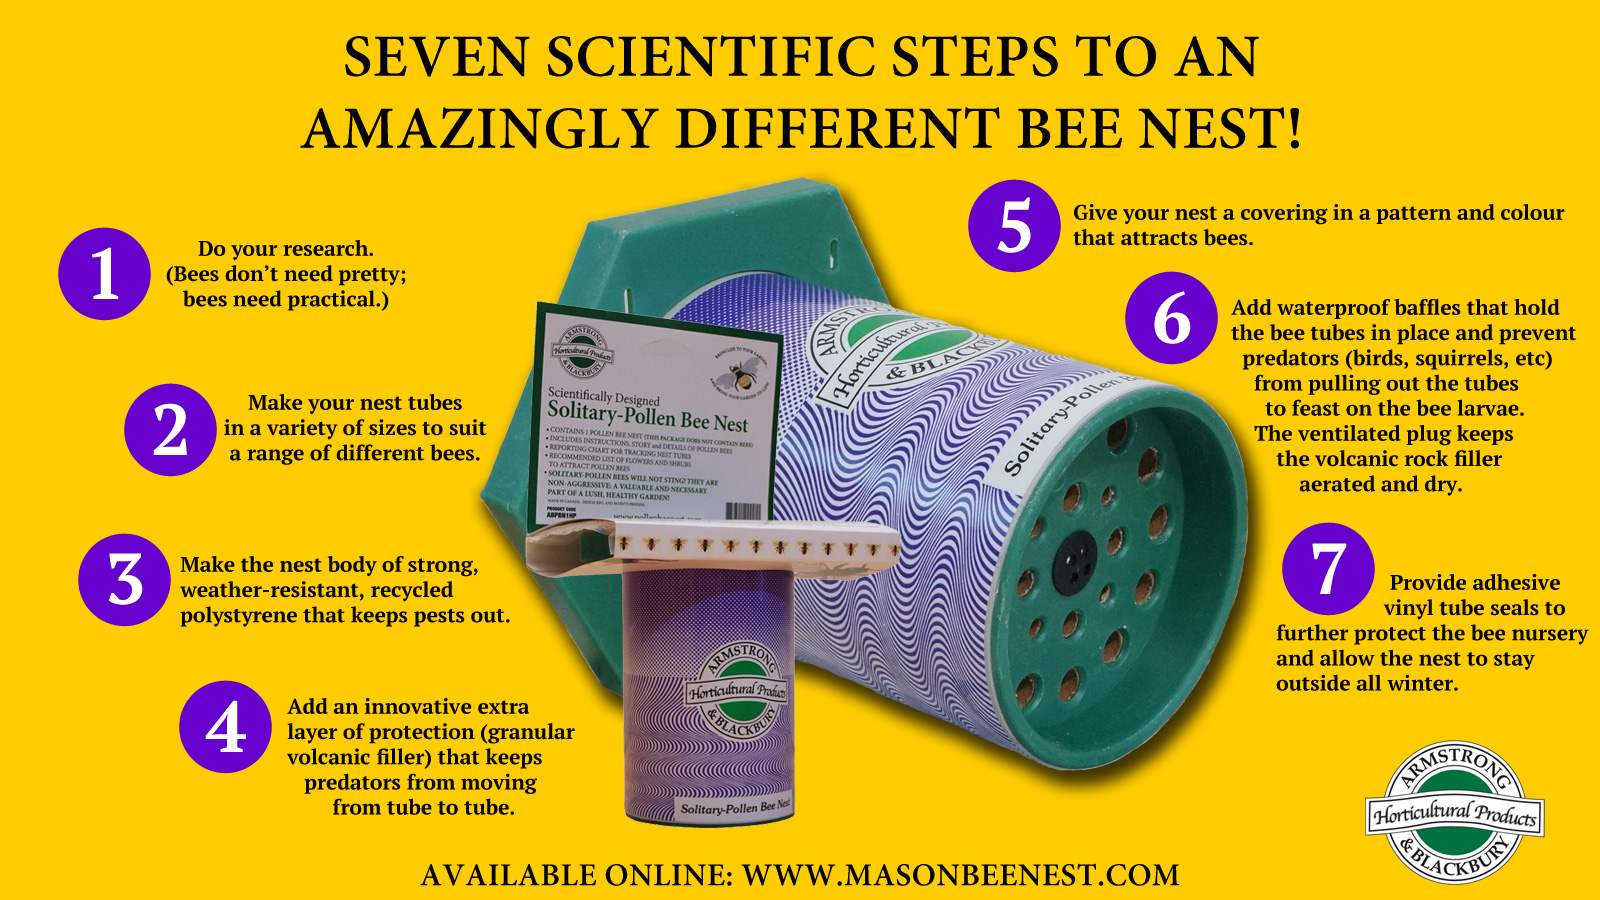 Seven Scientific Steps to an Amazingly Different Bee Nest